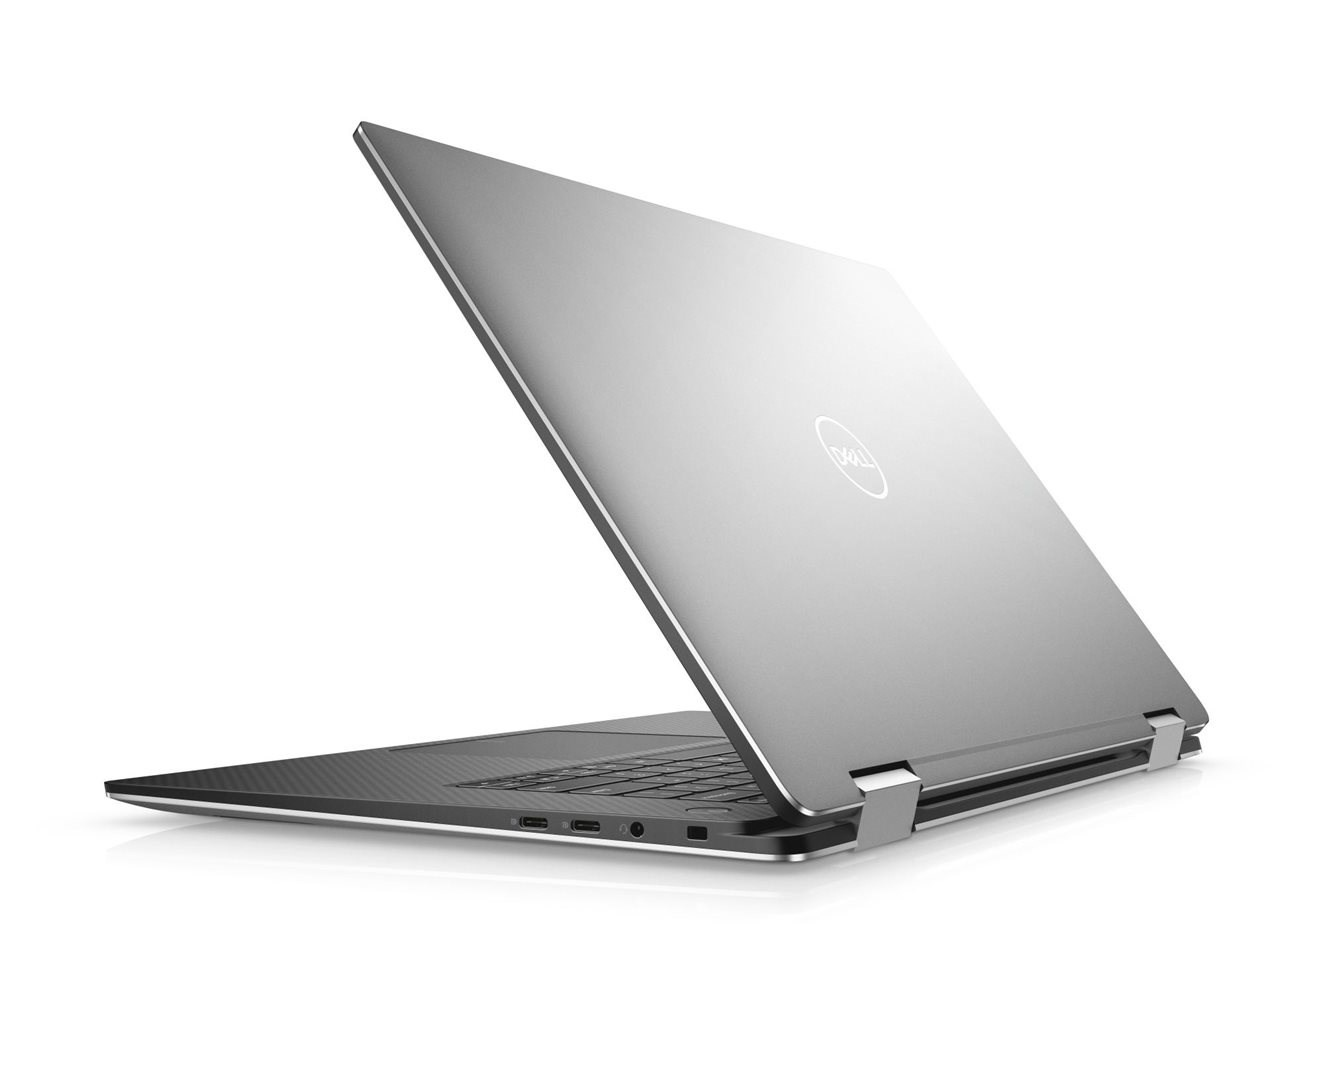 """DELL XPS 15 9575/Core i7-8705G/8GB/512GB SSD/15.6"""" FHD Touch/Radeon RX 870/W10Pro/36M NBD OS"""